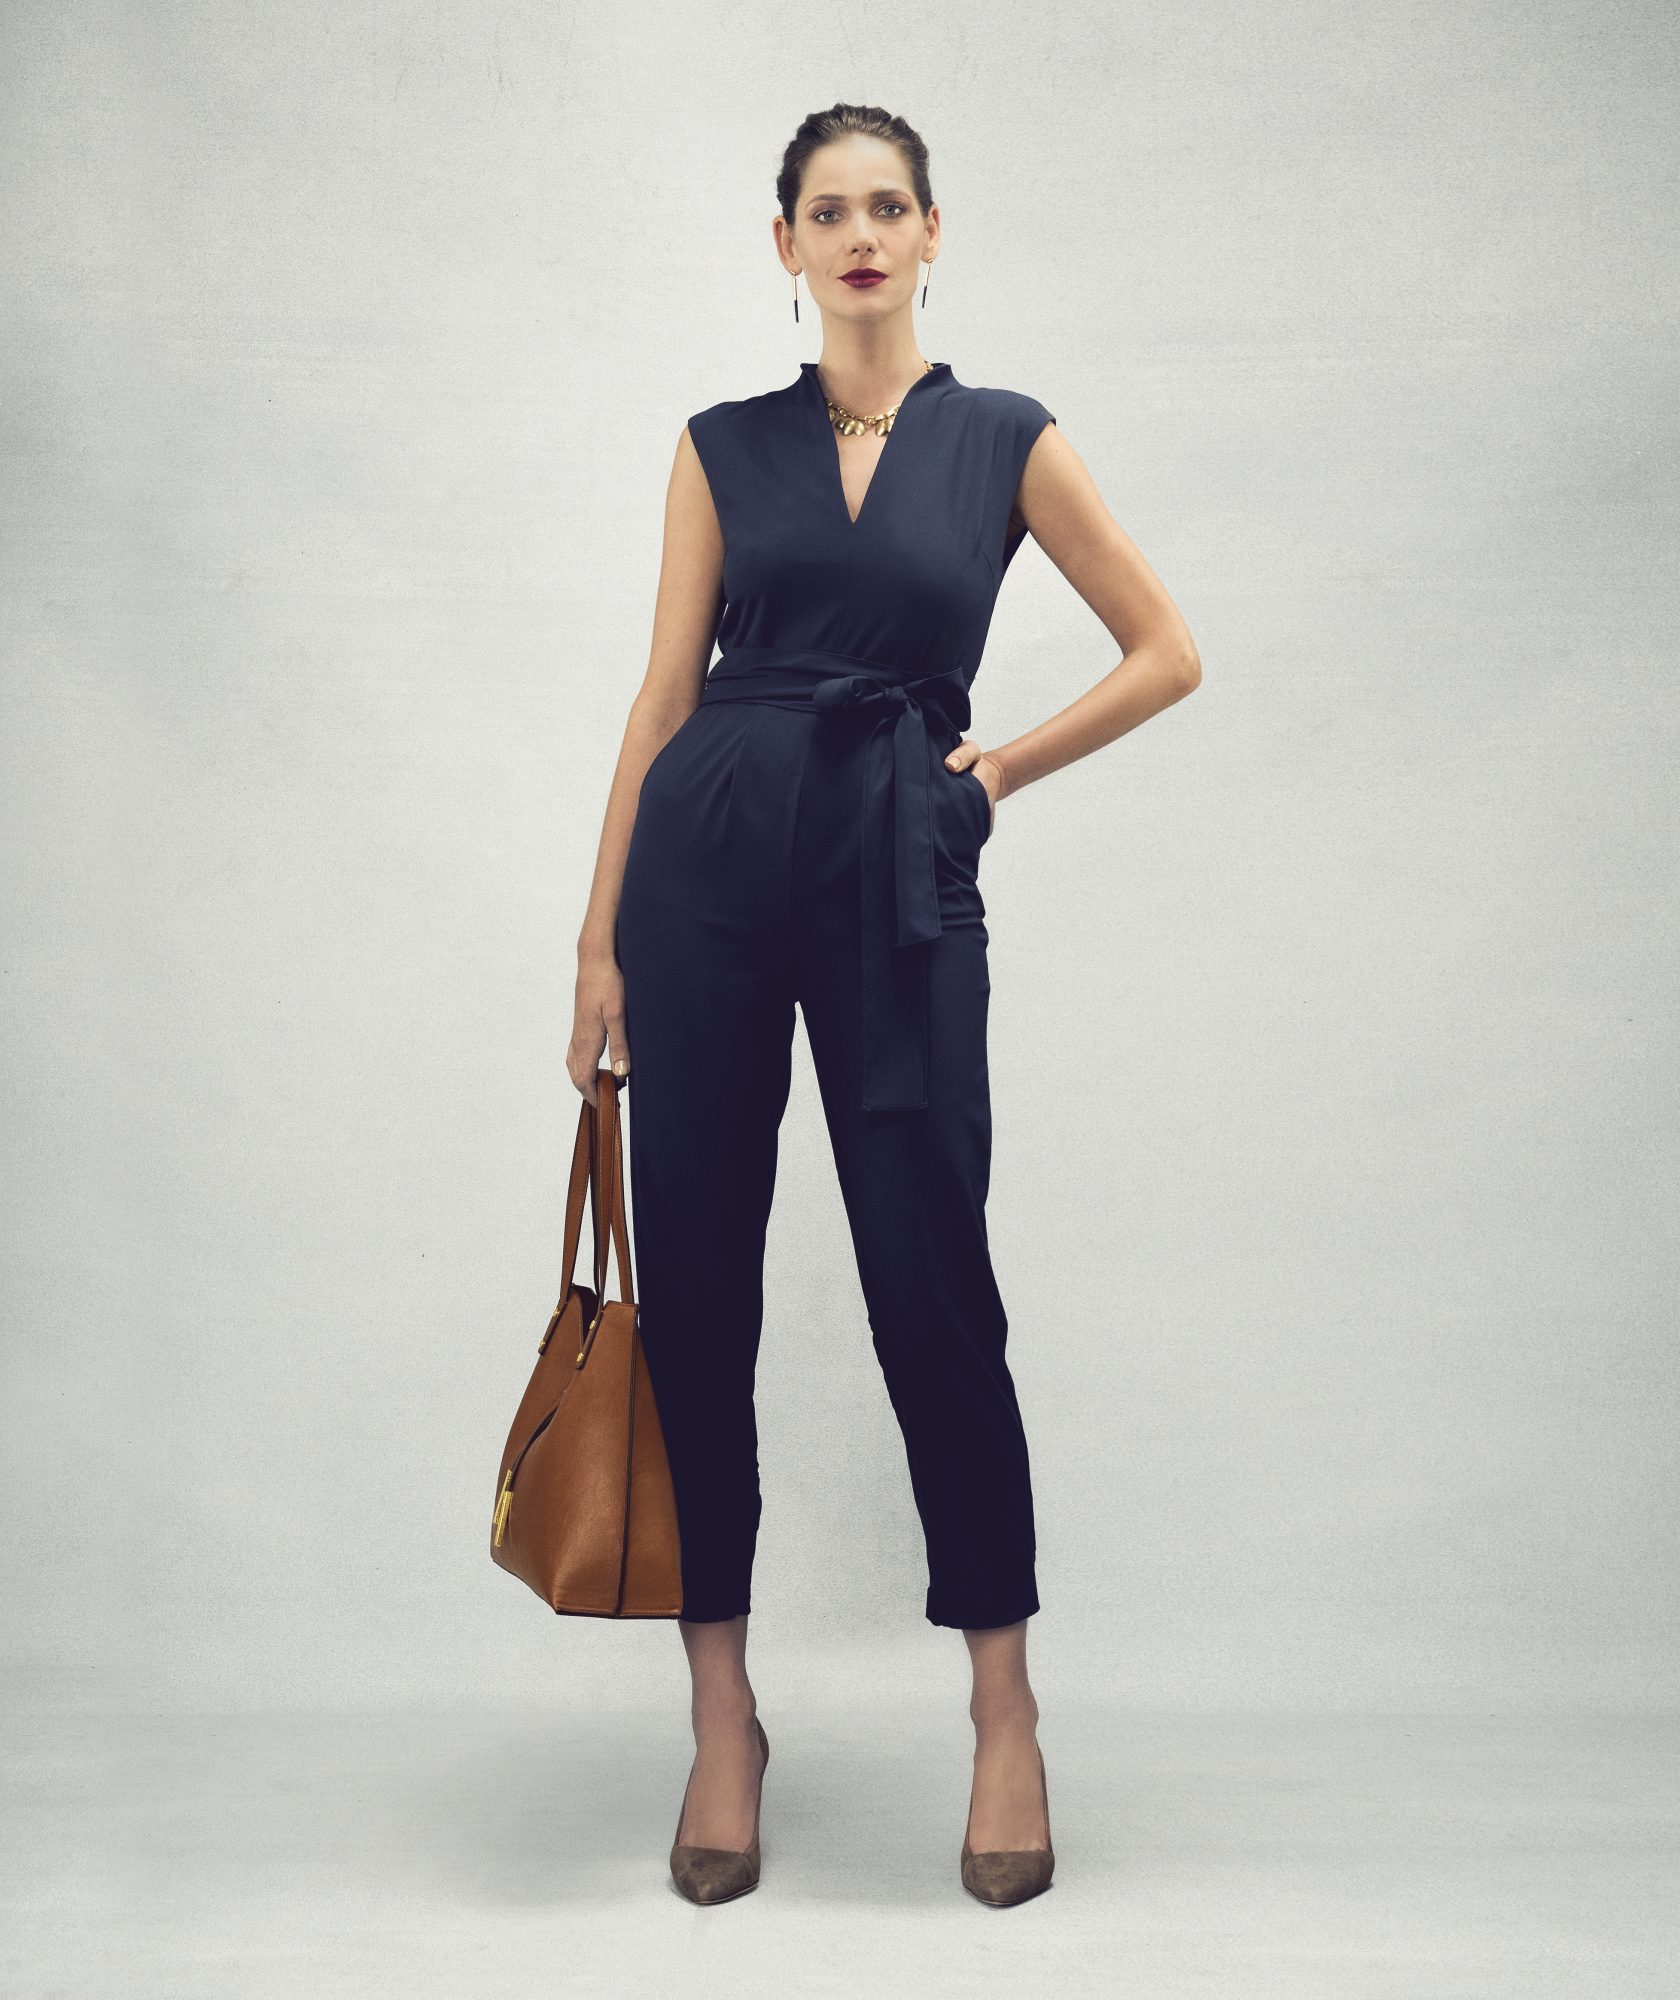 Outfit with jumpsuit and tote